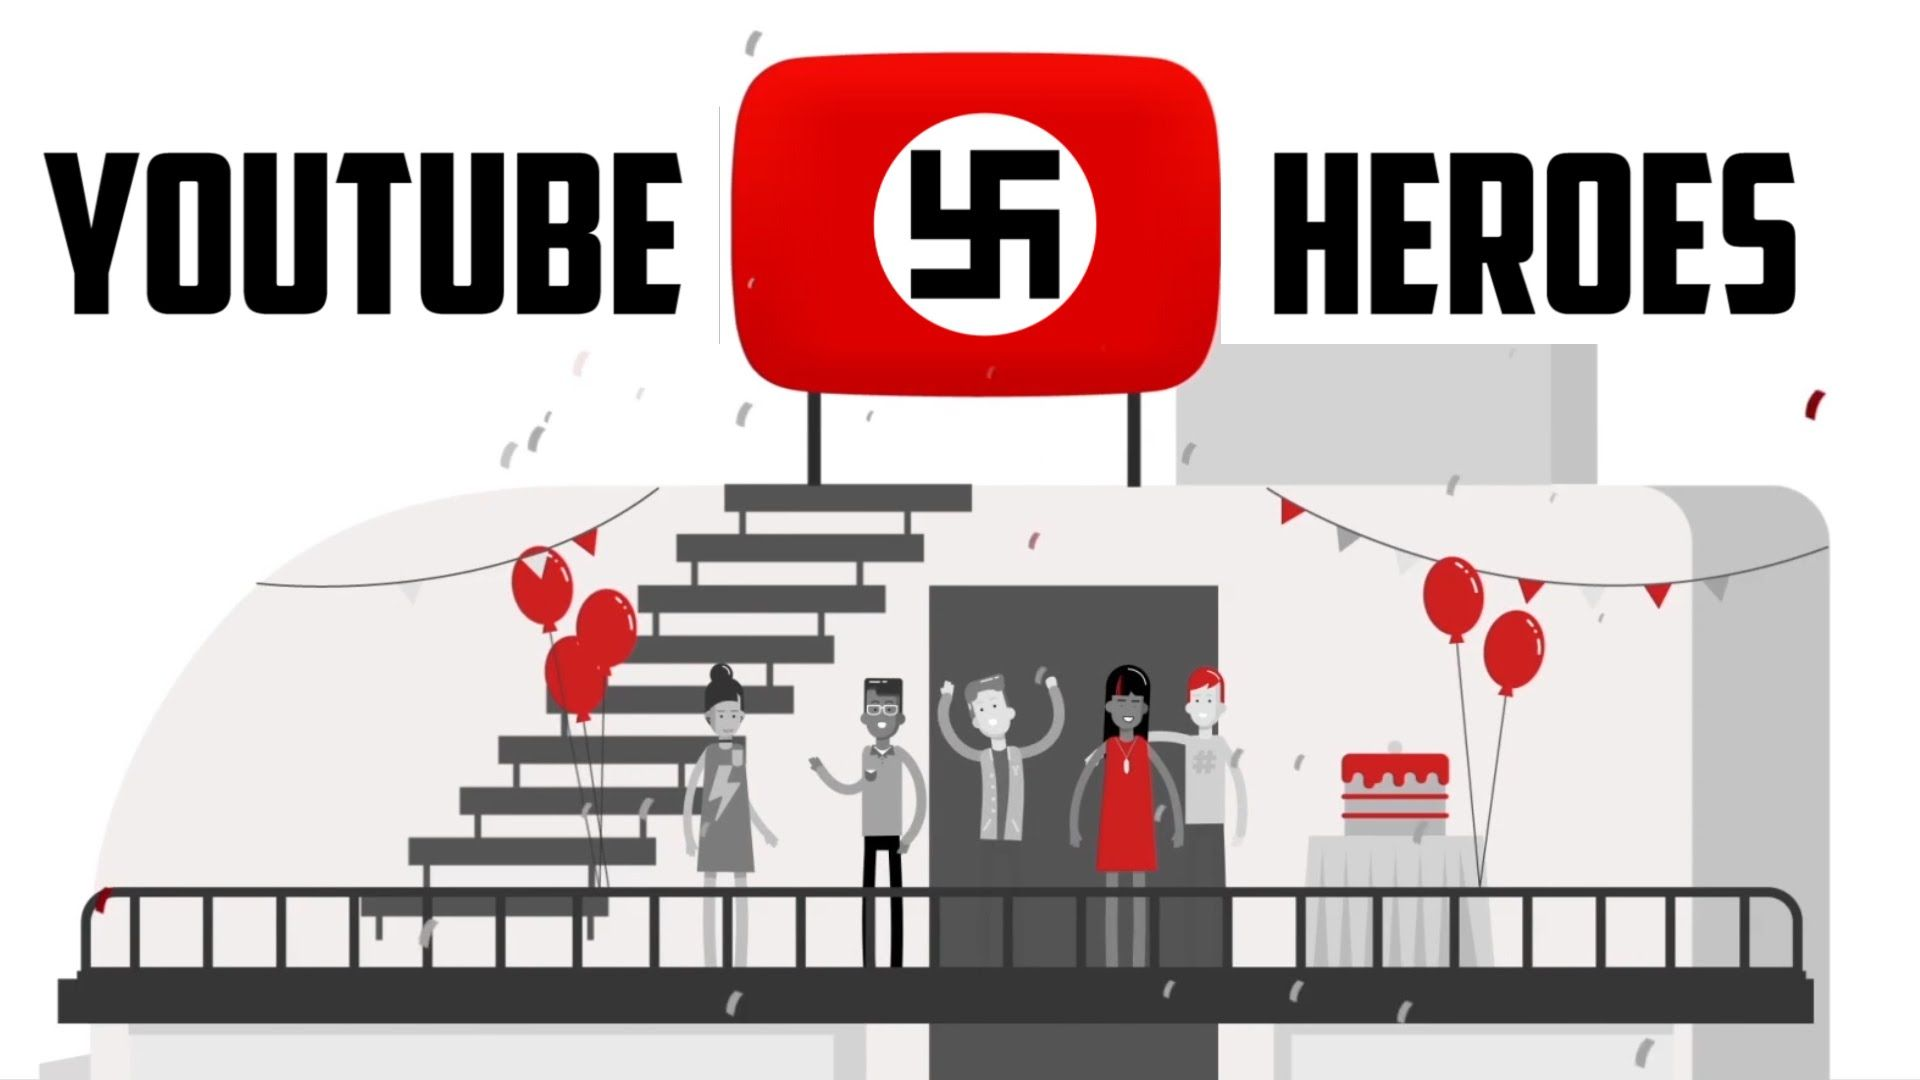 youtube heroes deleted version parody music videos of popular